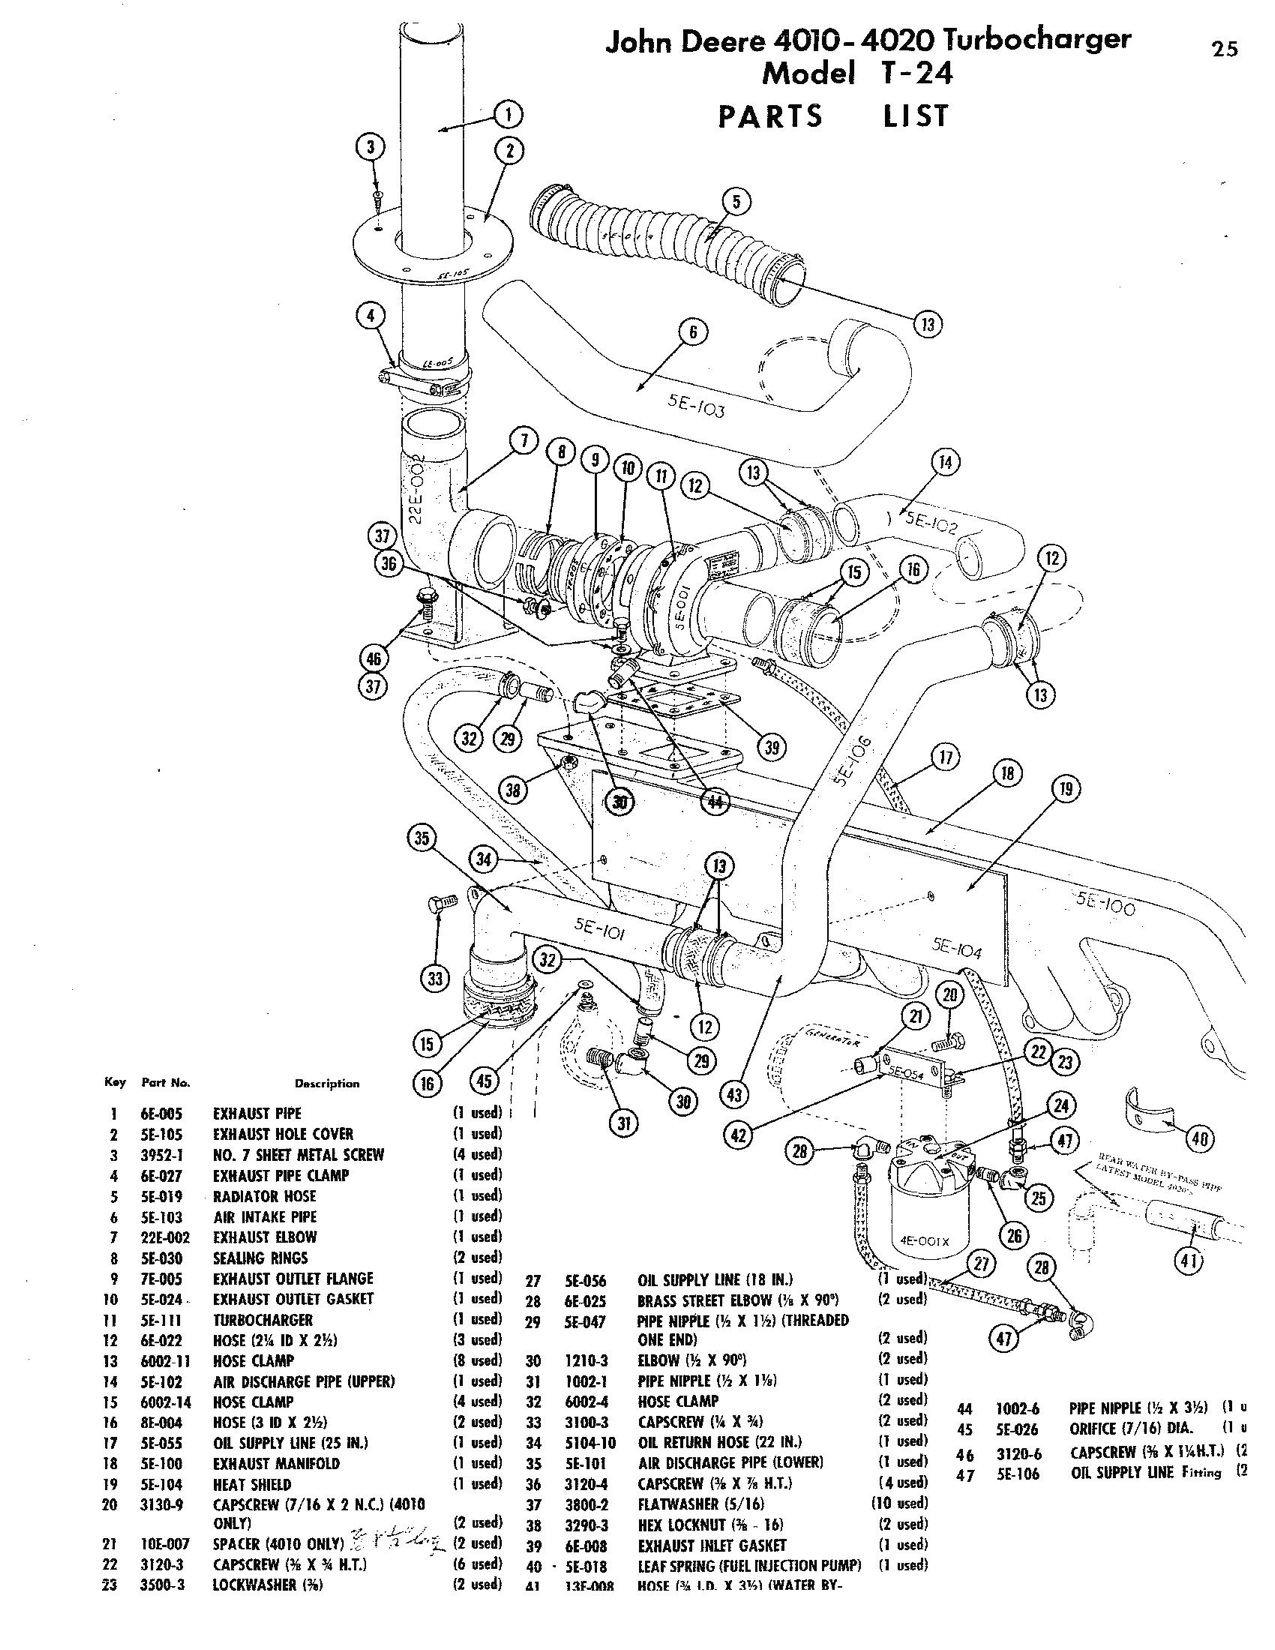 John Deere T 24 Turbo Kits